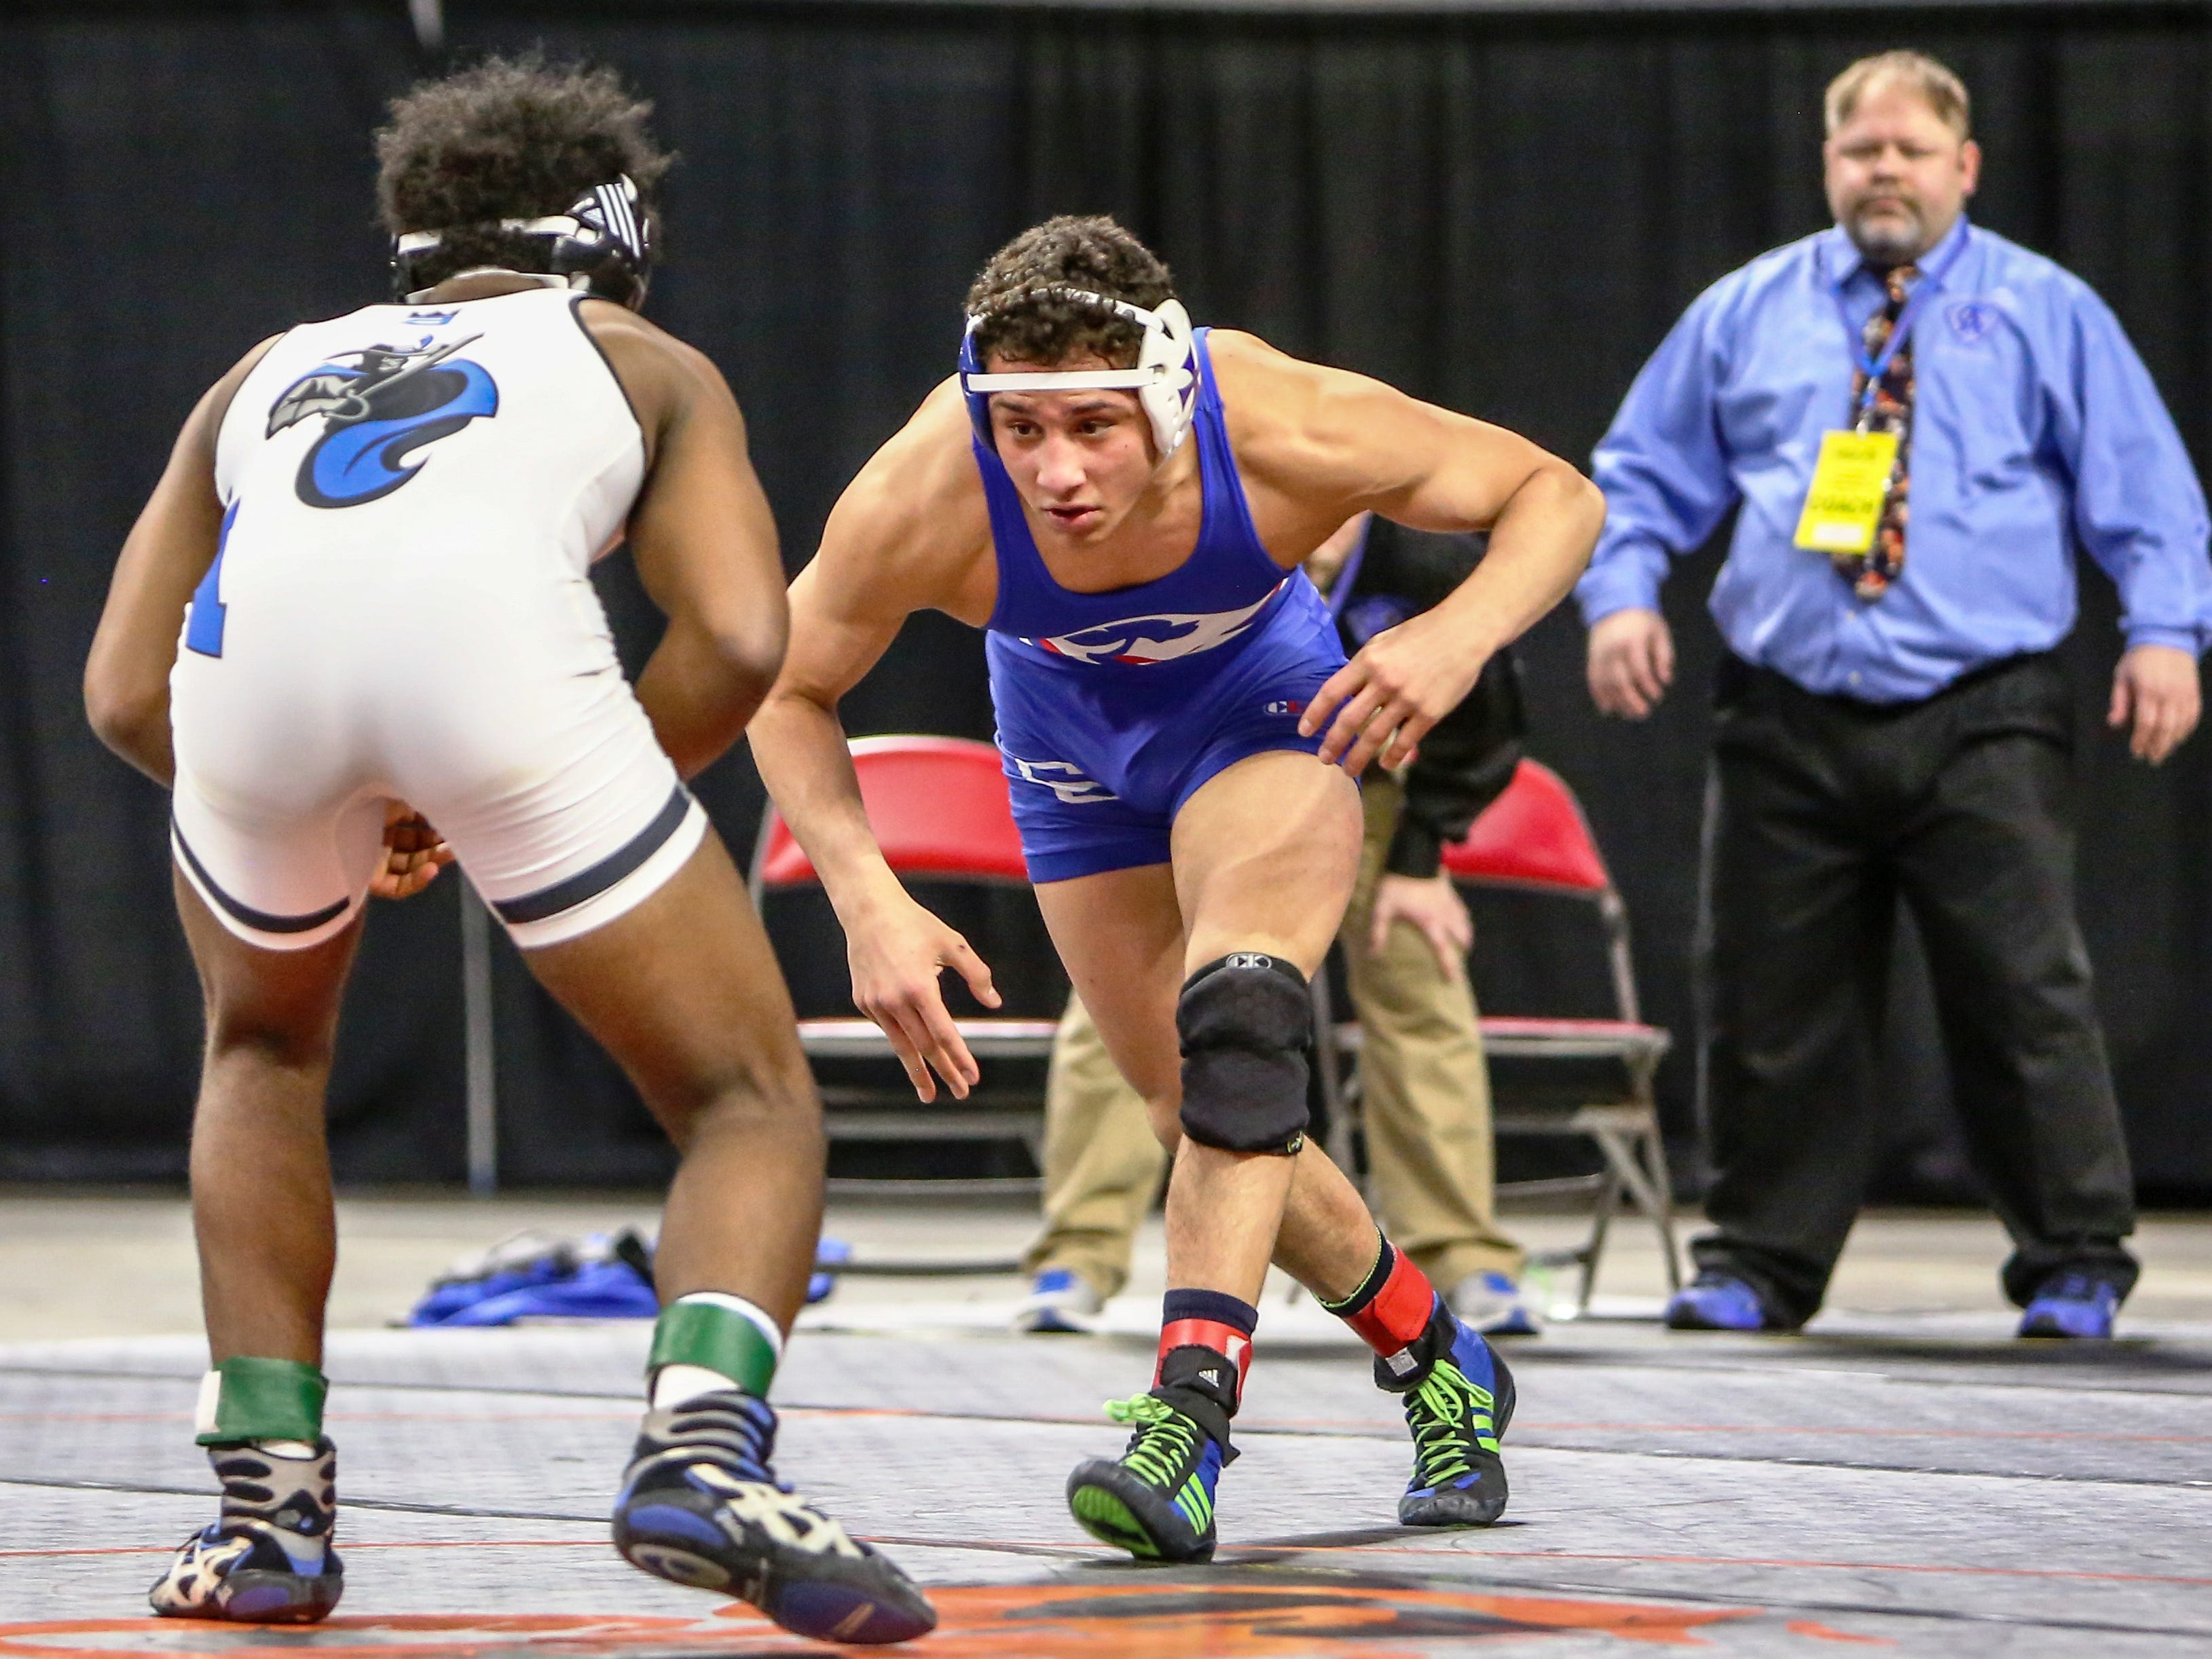 Catholic Central's undefeated 160-pounder Myles Amine (right) was named wrestling All-Area Player of the Year.